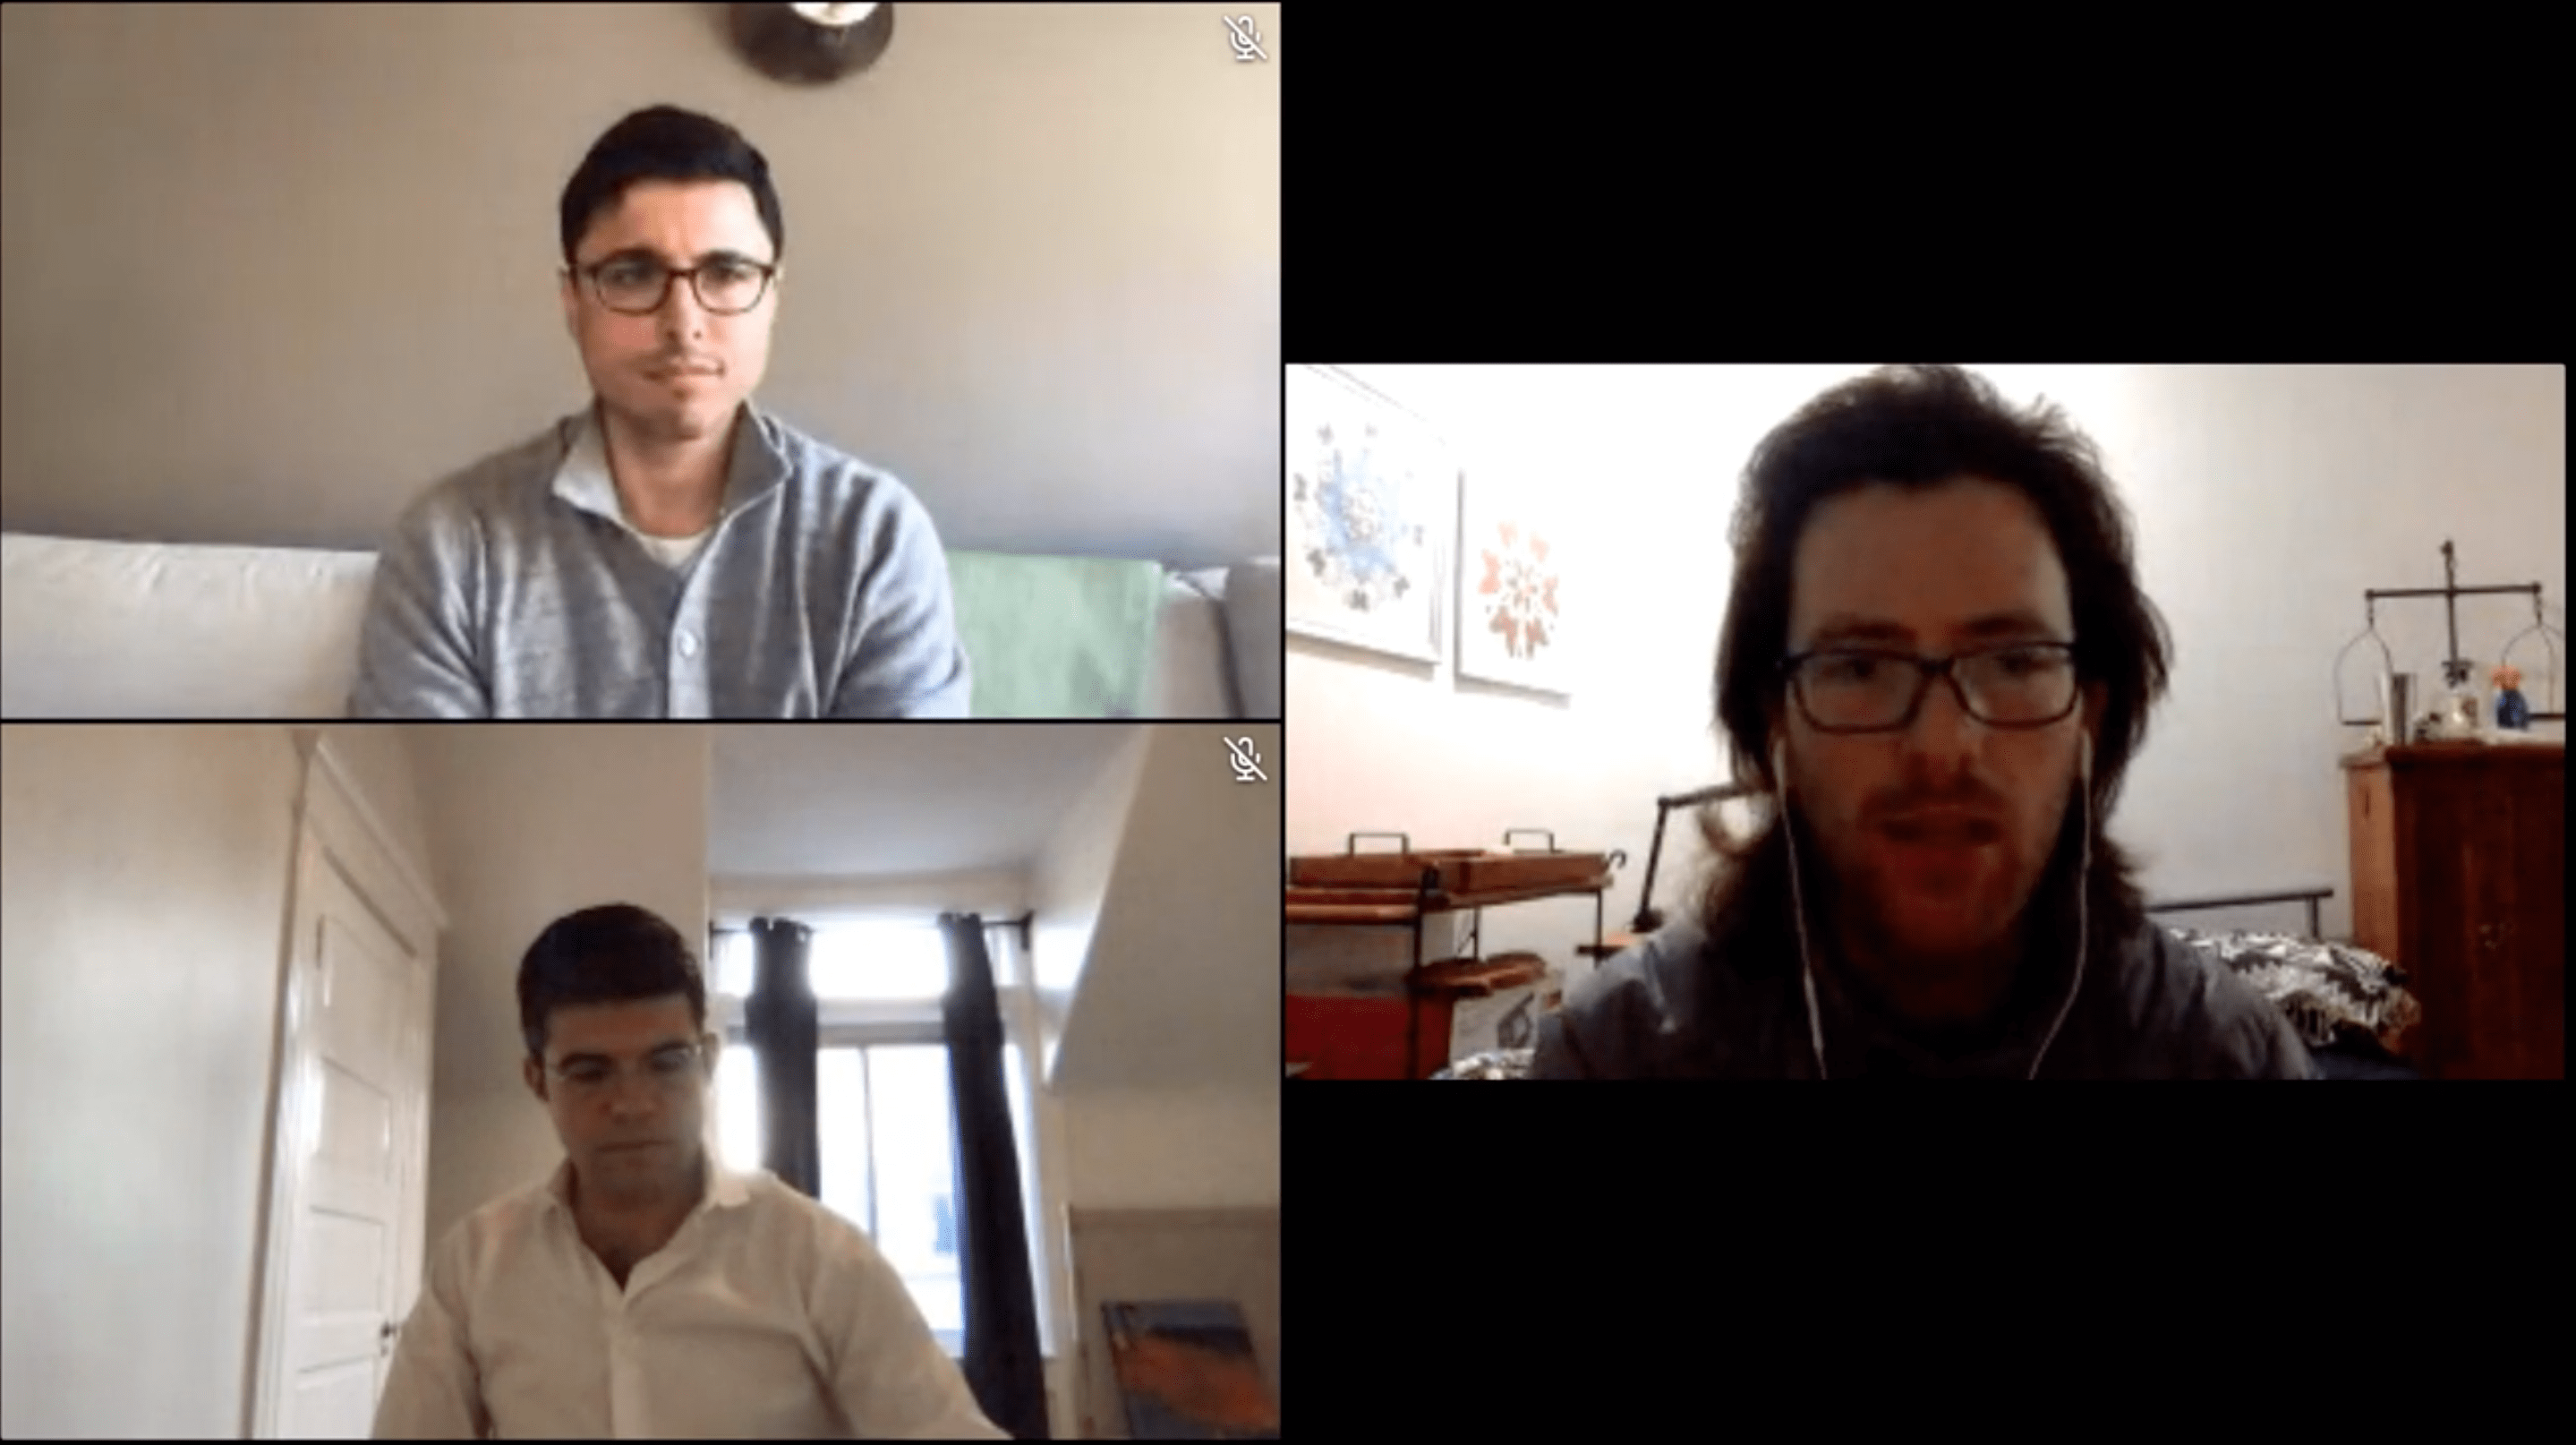 A snippet of the webinar State of SaaS Sales in a COVID-19 World, with the speakers Troy, Dailius and Germain.